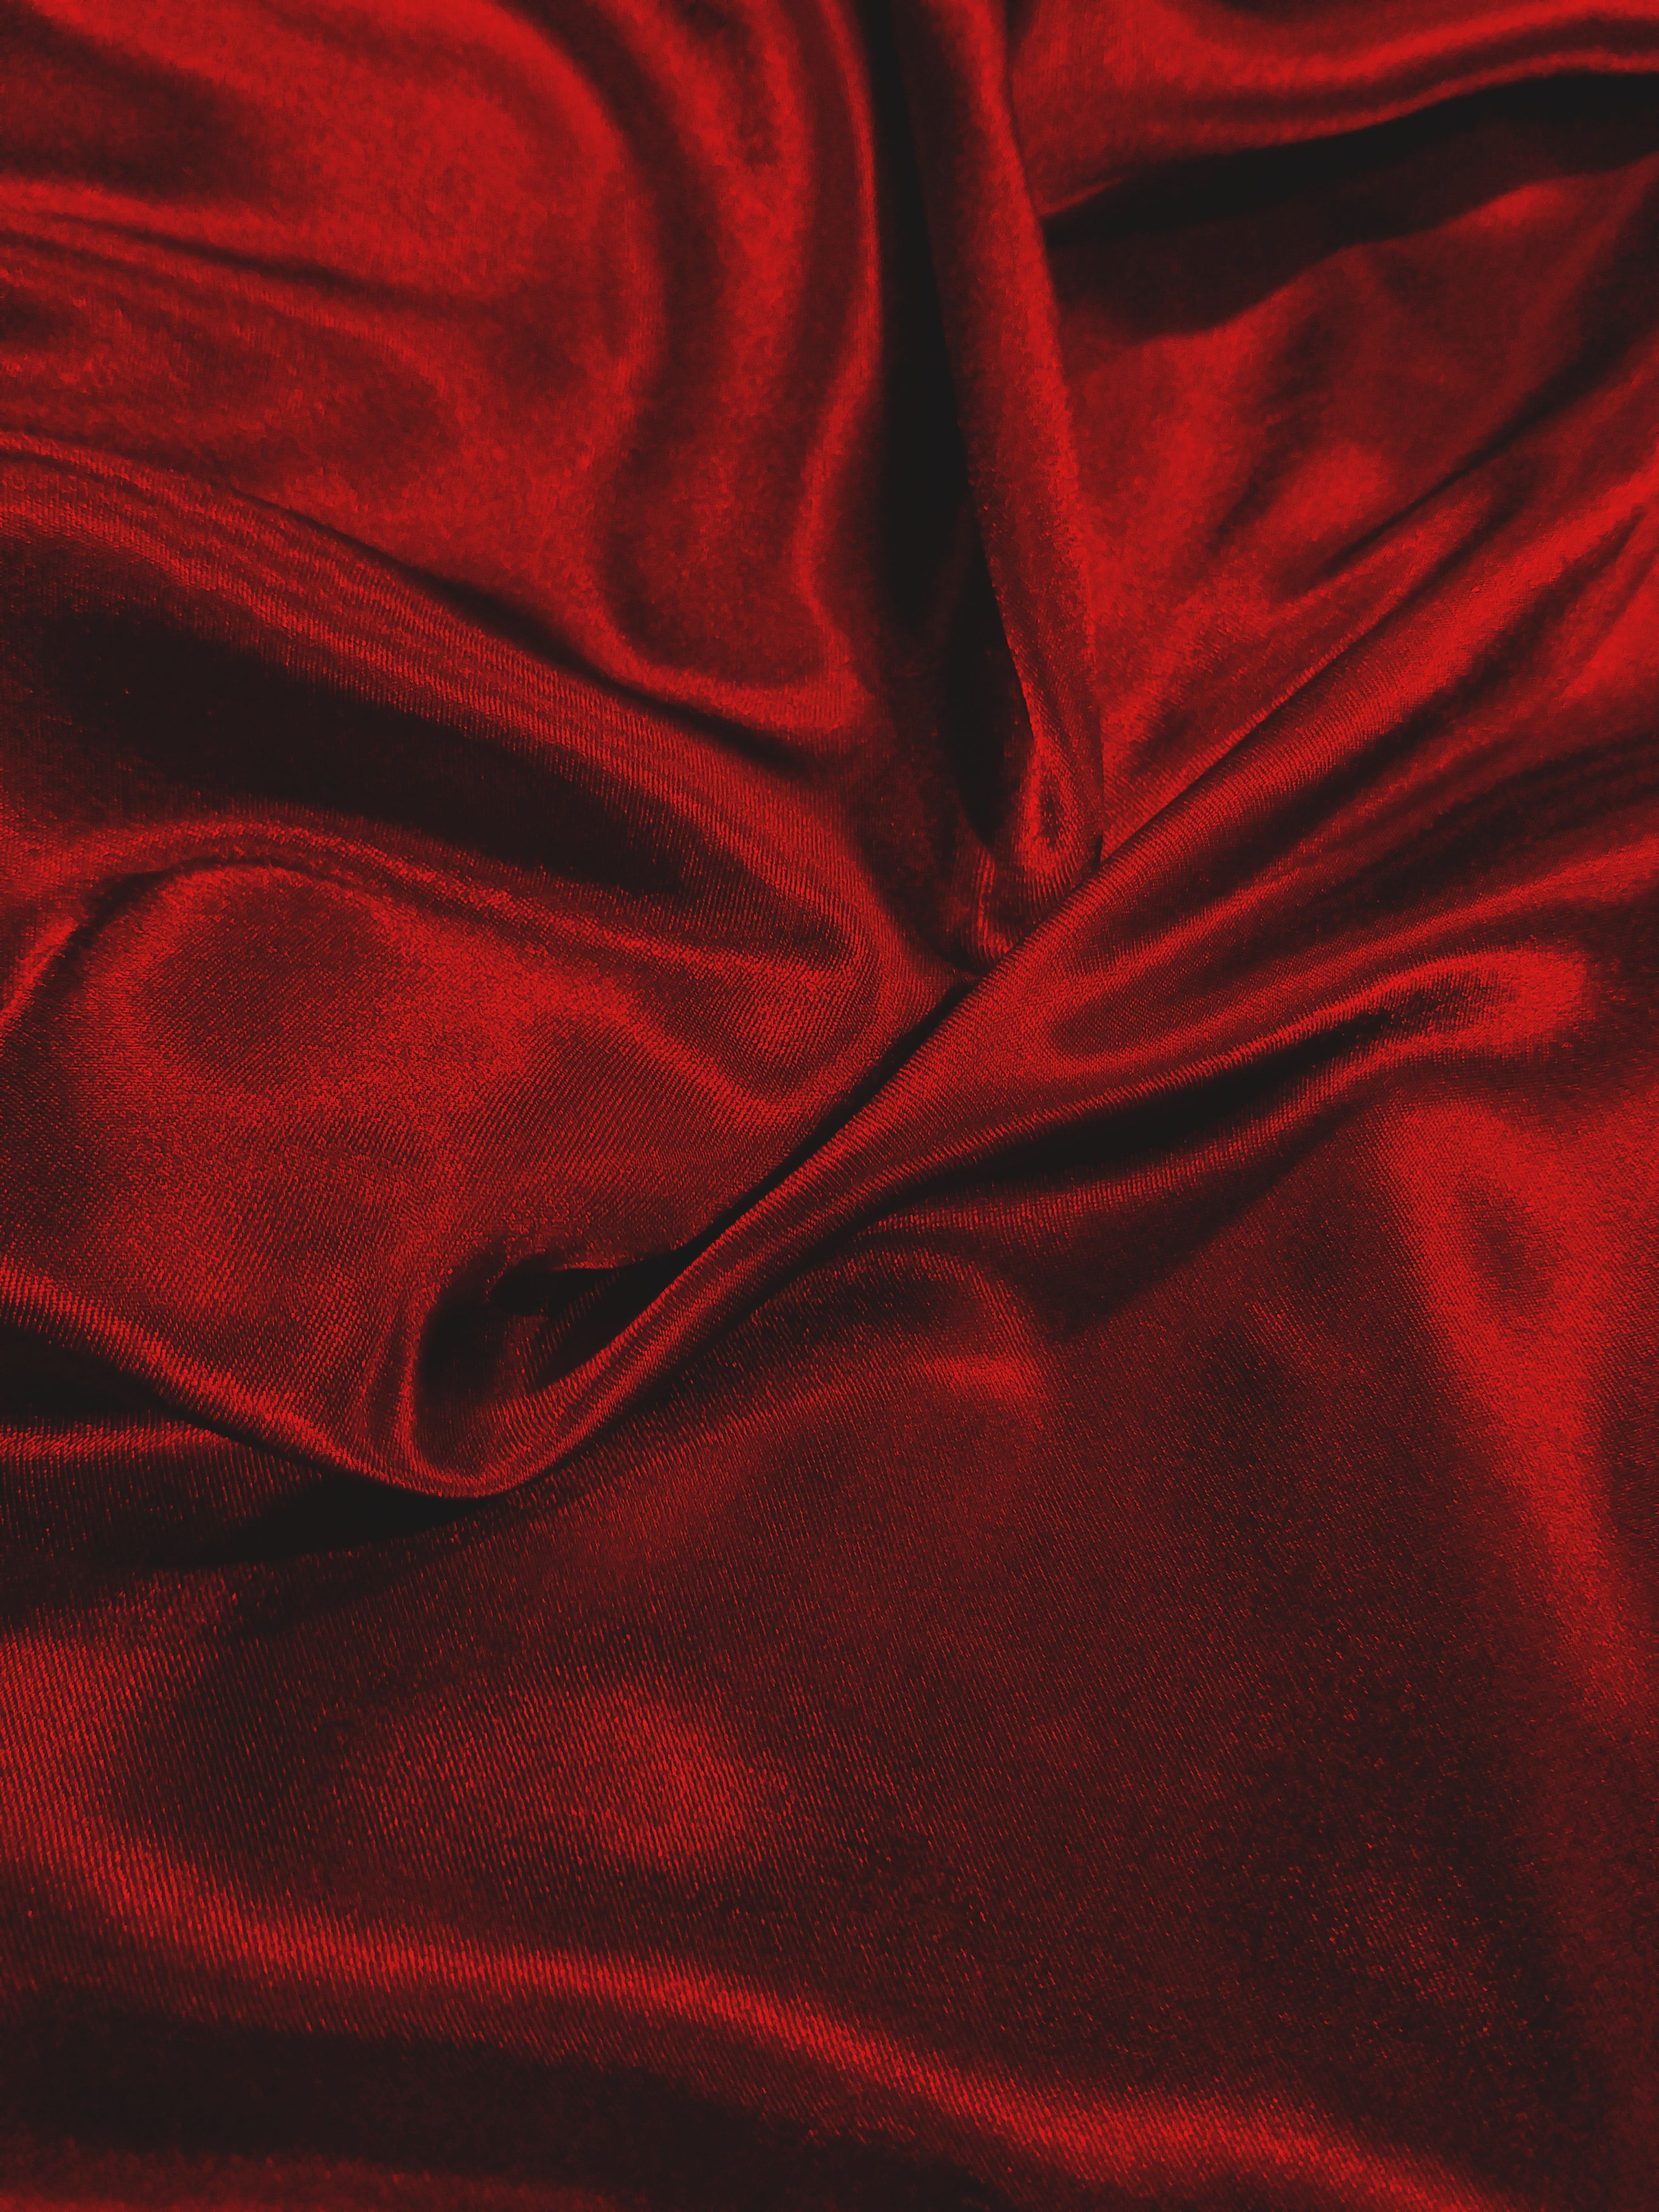 Red Textile Red Aesthetic Red Pictures Purple Aesthetic